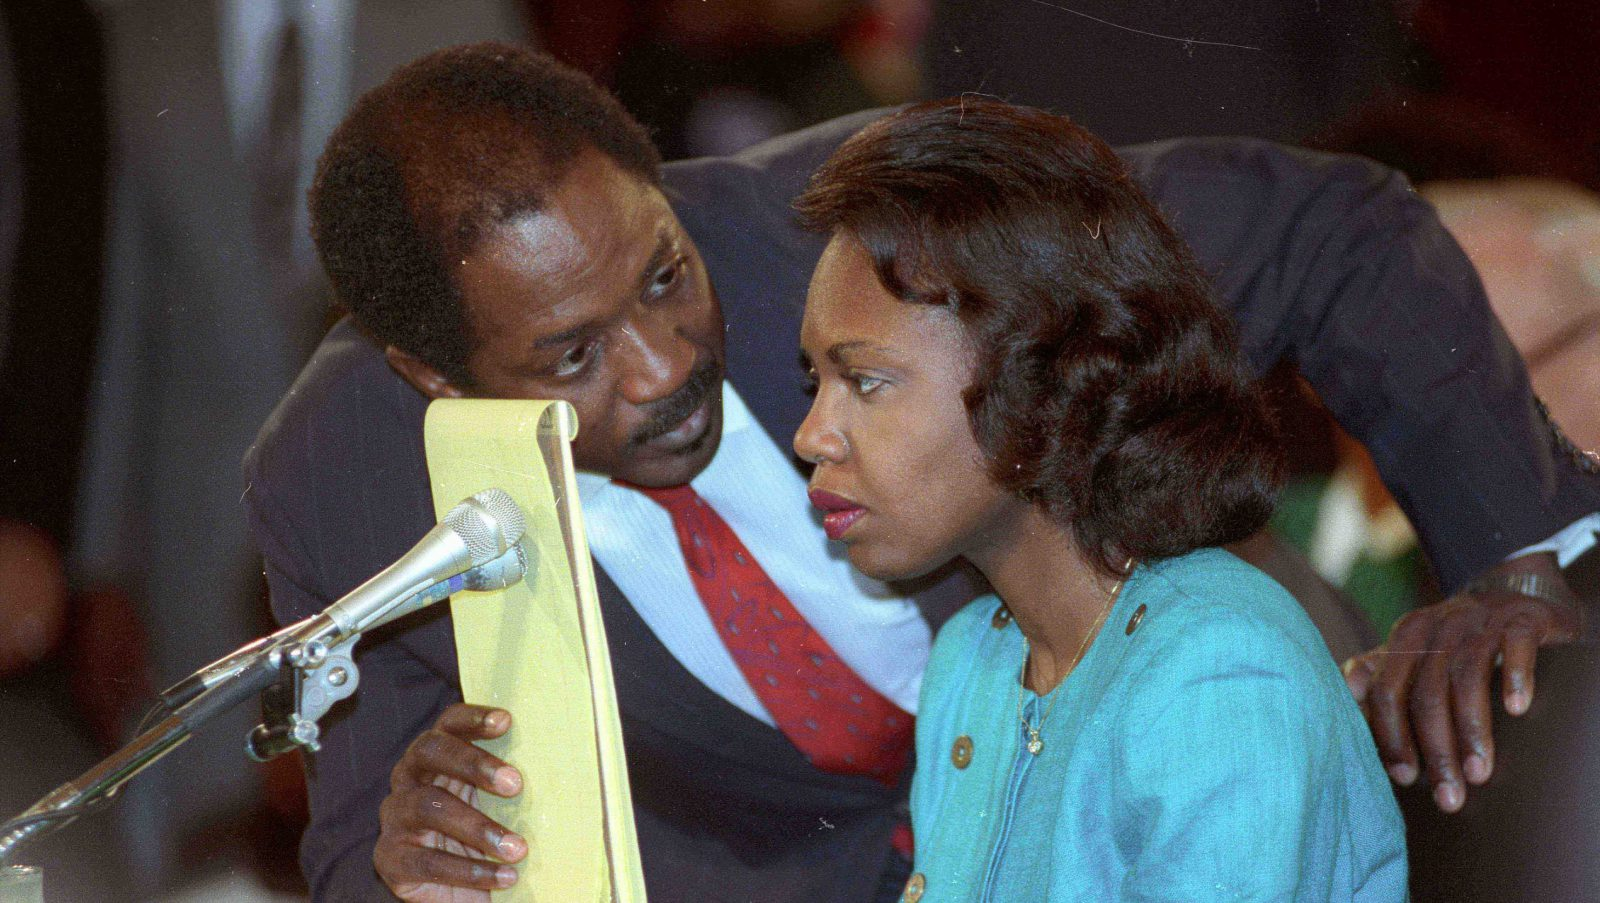 Counsel Charles Ogeltree uses a legal pad to cover a microphone as he advises law professor Anita Hill during her testimony October 11, 1991 before the Senate Judiciary Committee hearings on Supreme Court nominee Judge Clarence Thomas. Hill testified she was sexually harassed by Thomas while she was his aide; Thomas has denied the charges.